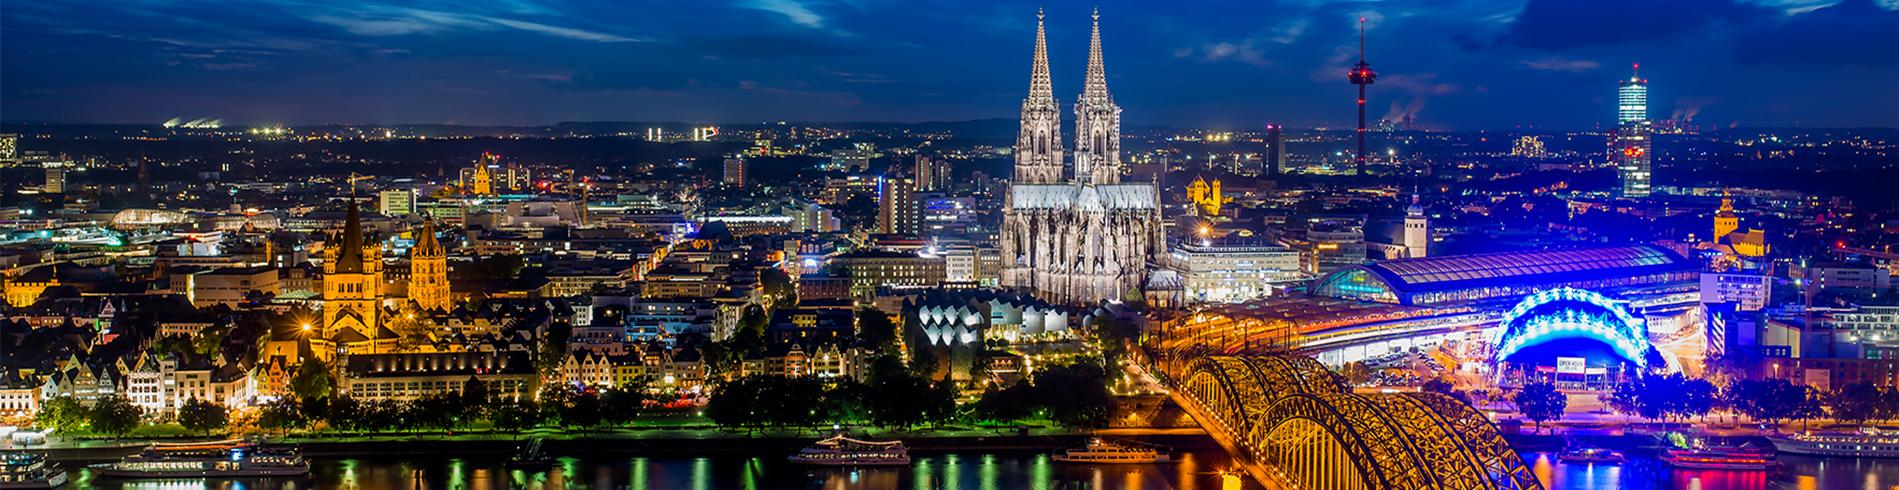 night time panorama Cologne